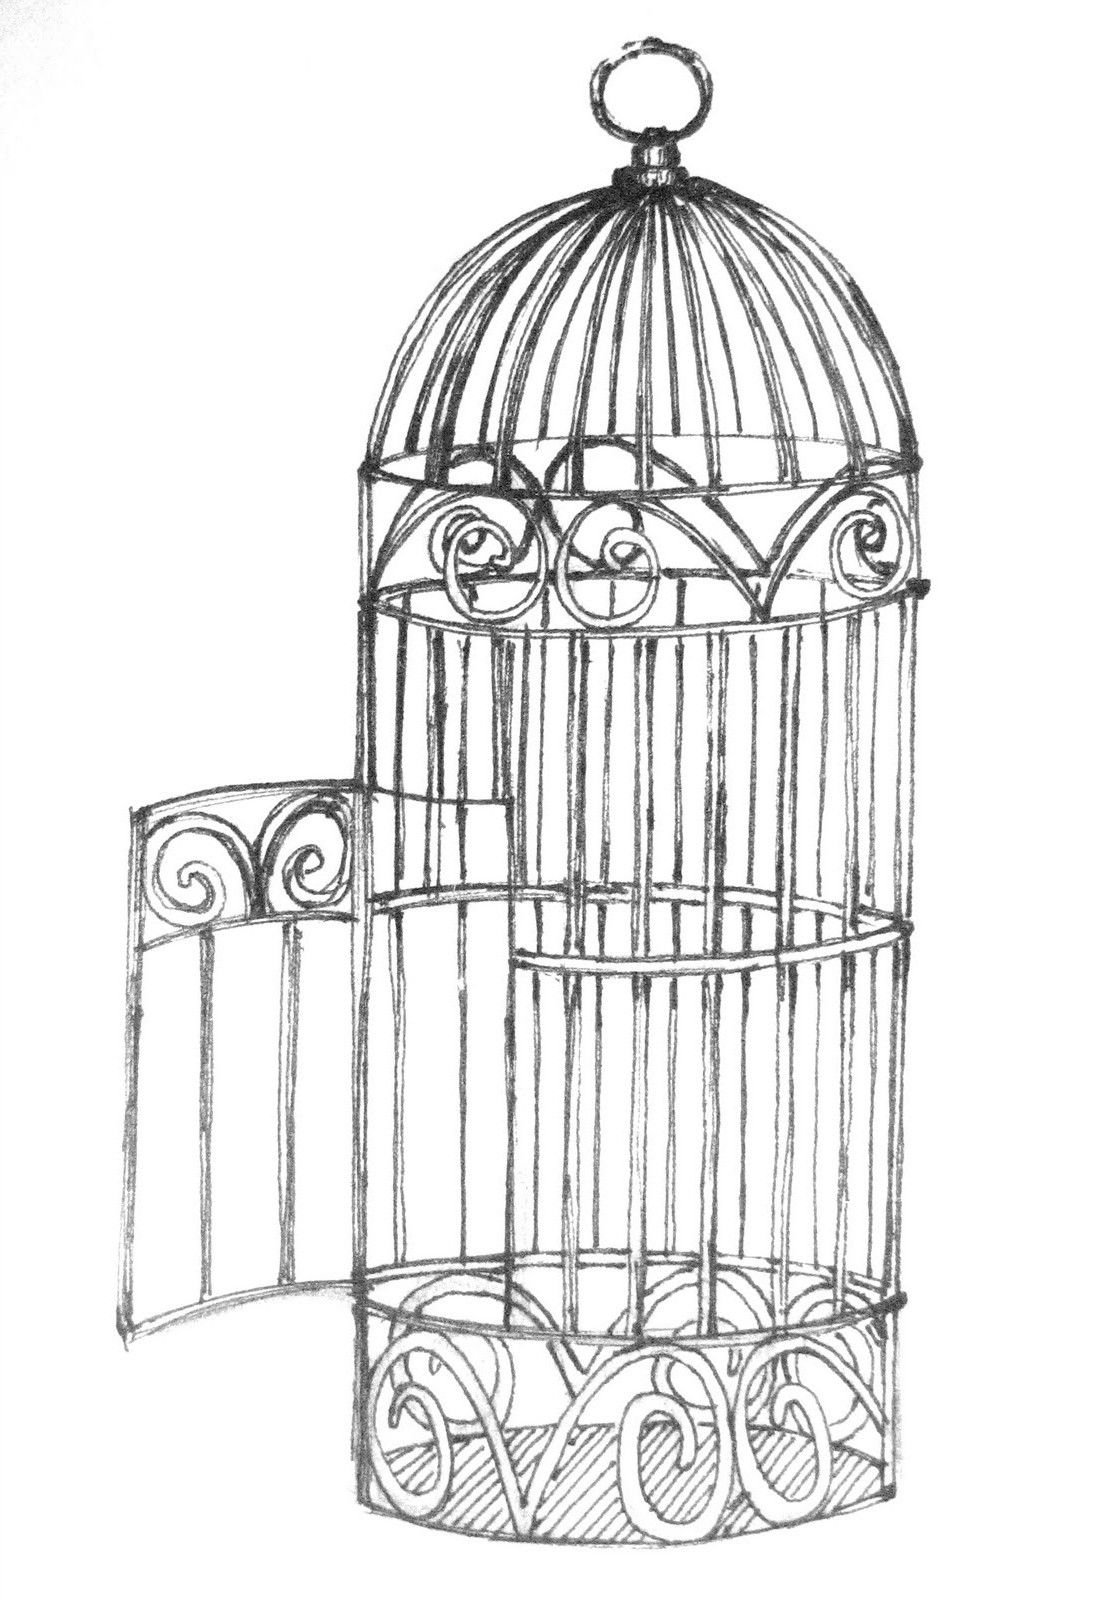 Vintage Birdcage And Flowers Drawing Google Search Flower Drawing Cage Tattoos Vintage Bird Cage